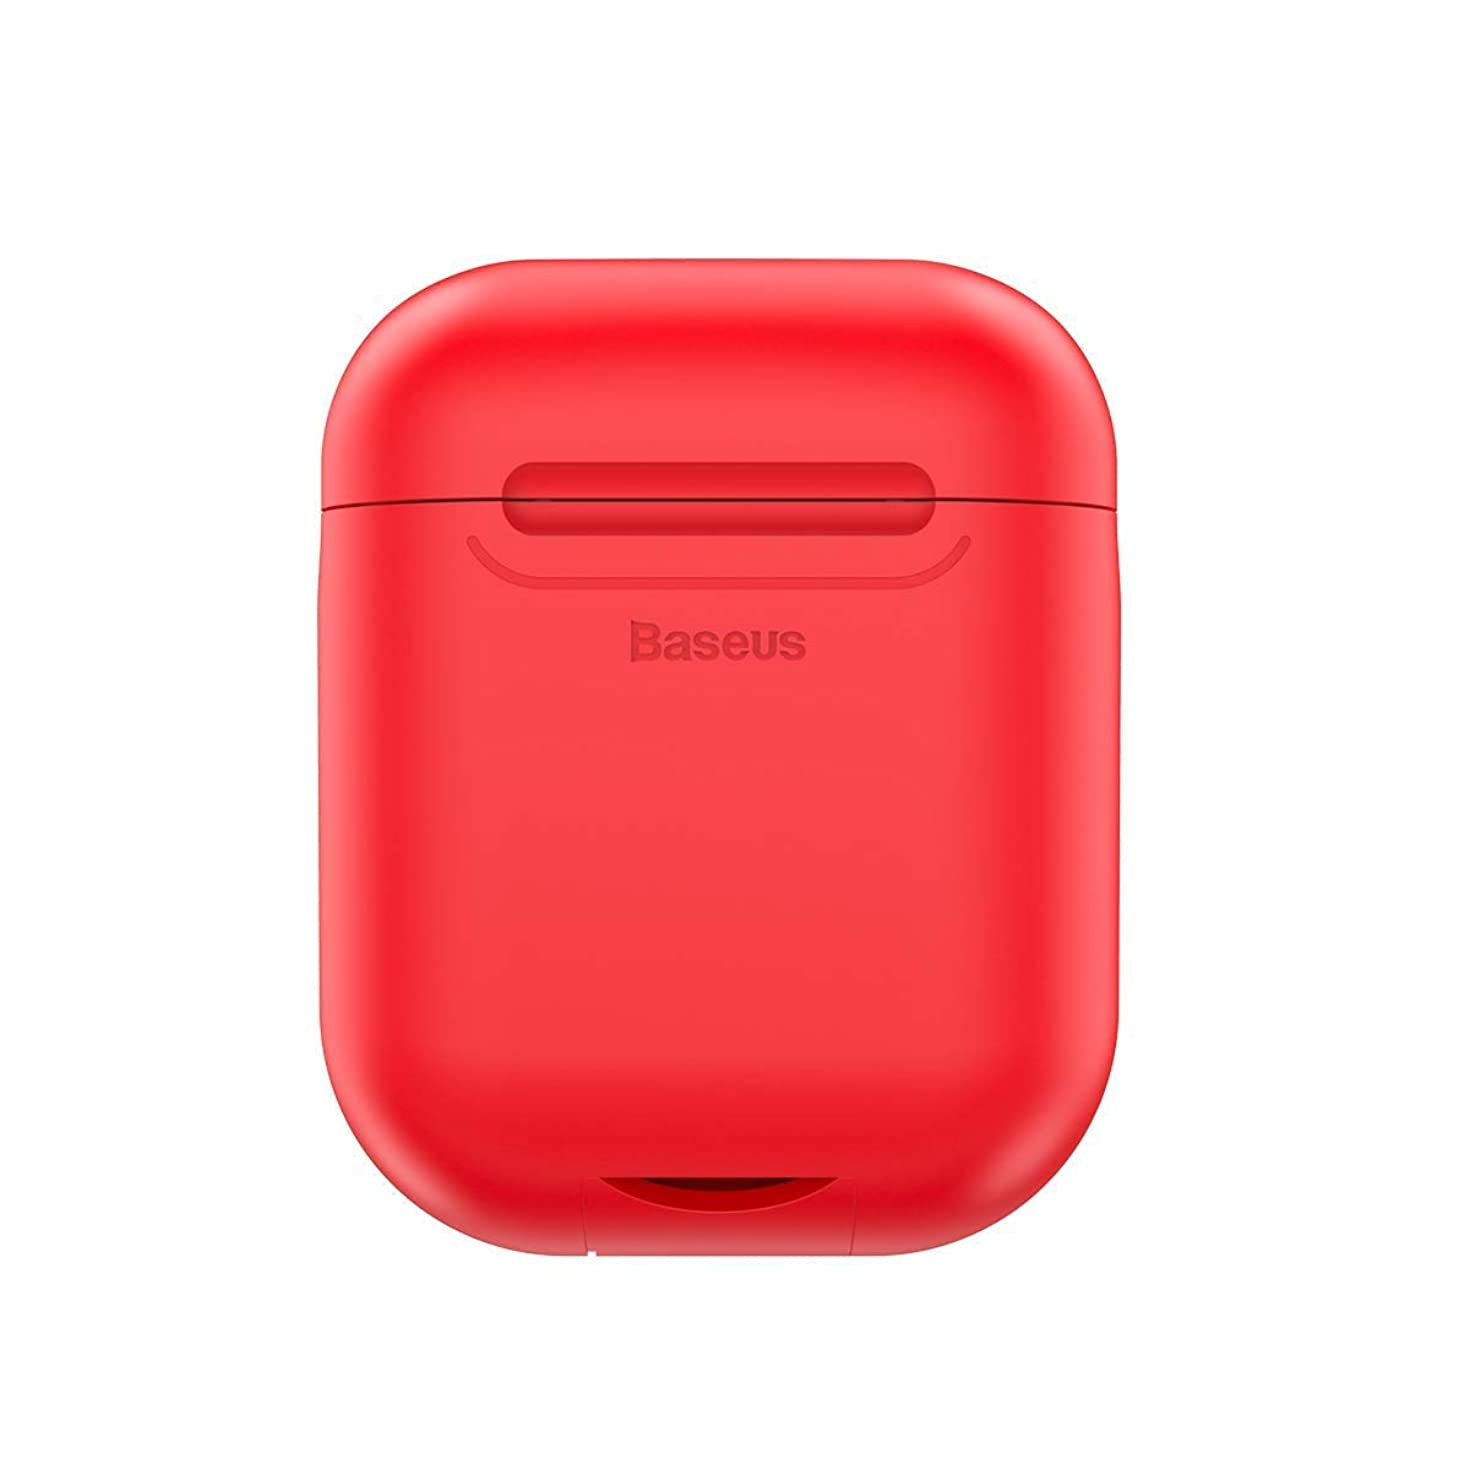 Airpods Wireless Charging Case,Wireless Charging Receiver for Airpod - Airpod Compatible Qi Charging Lightning Adapter Sleeve Silicone Case Cover with Any Qi Wireless Charger (Red)